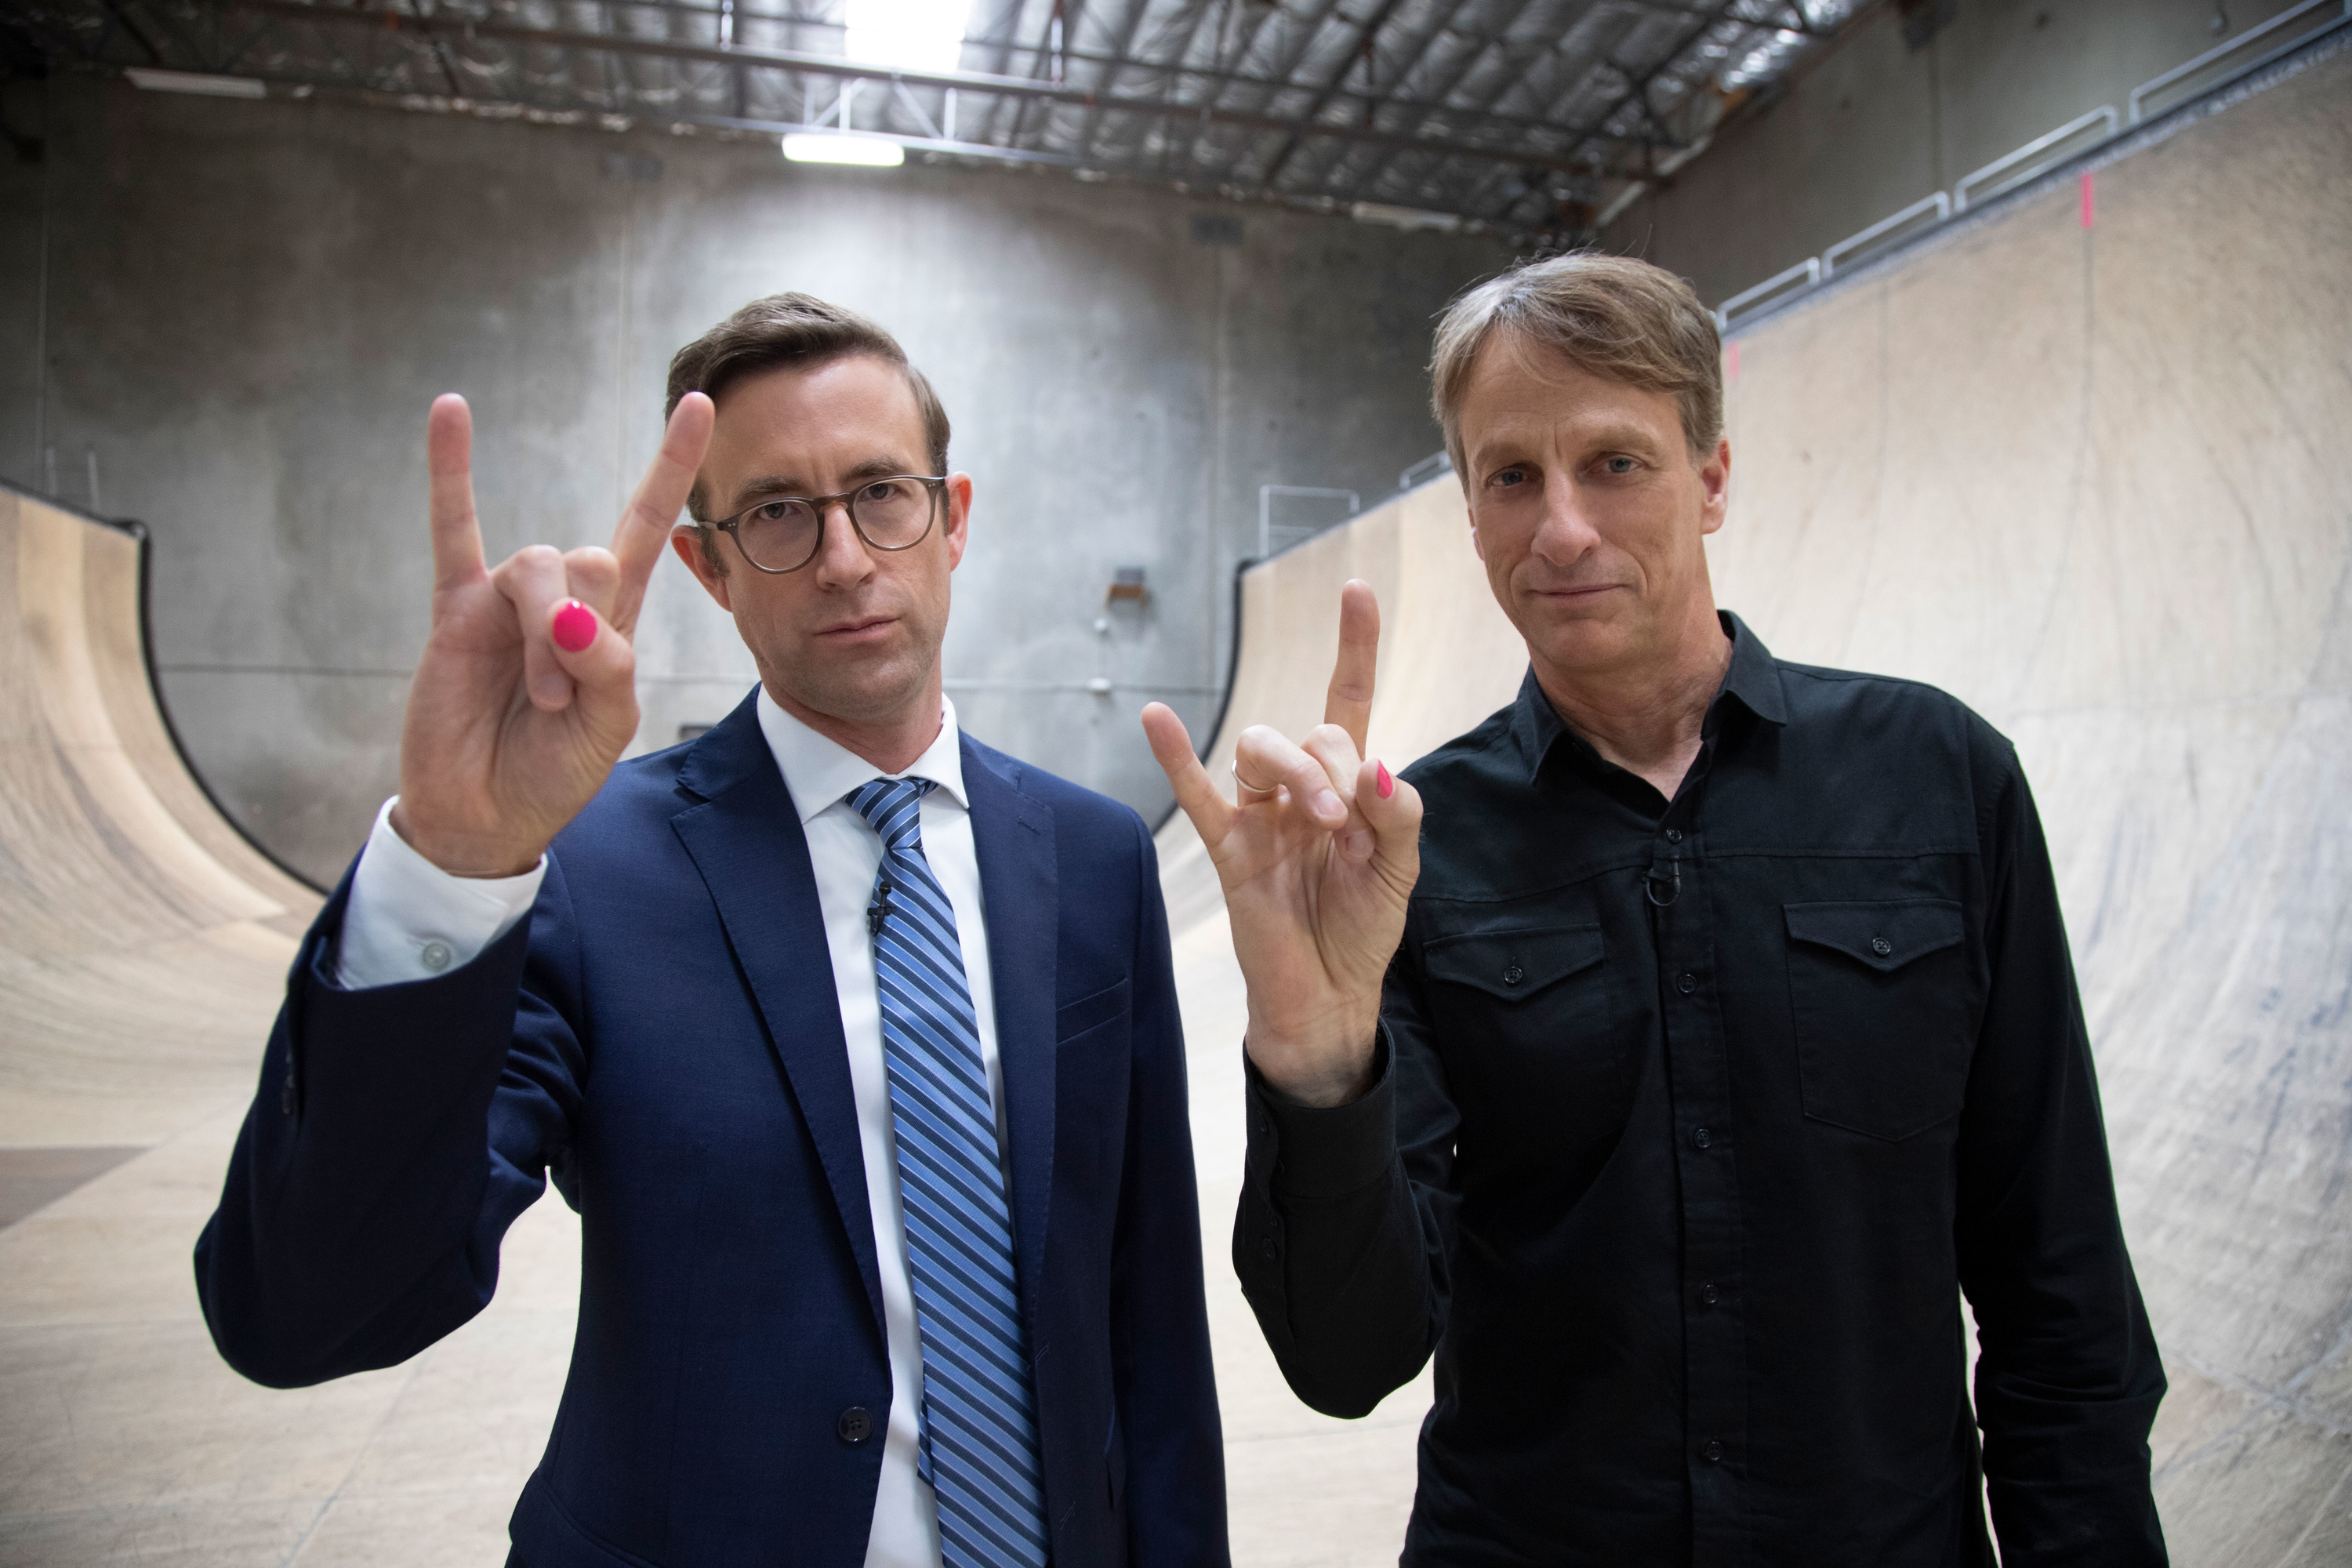 Bagel Bites has reunited with Tony Hawk for a dad-themed social media campaign